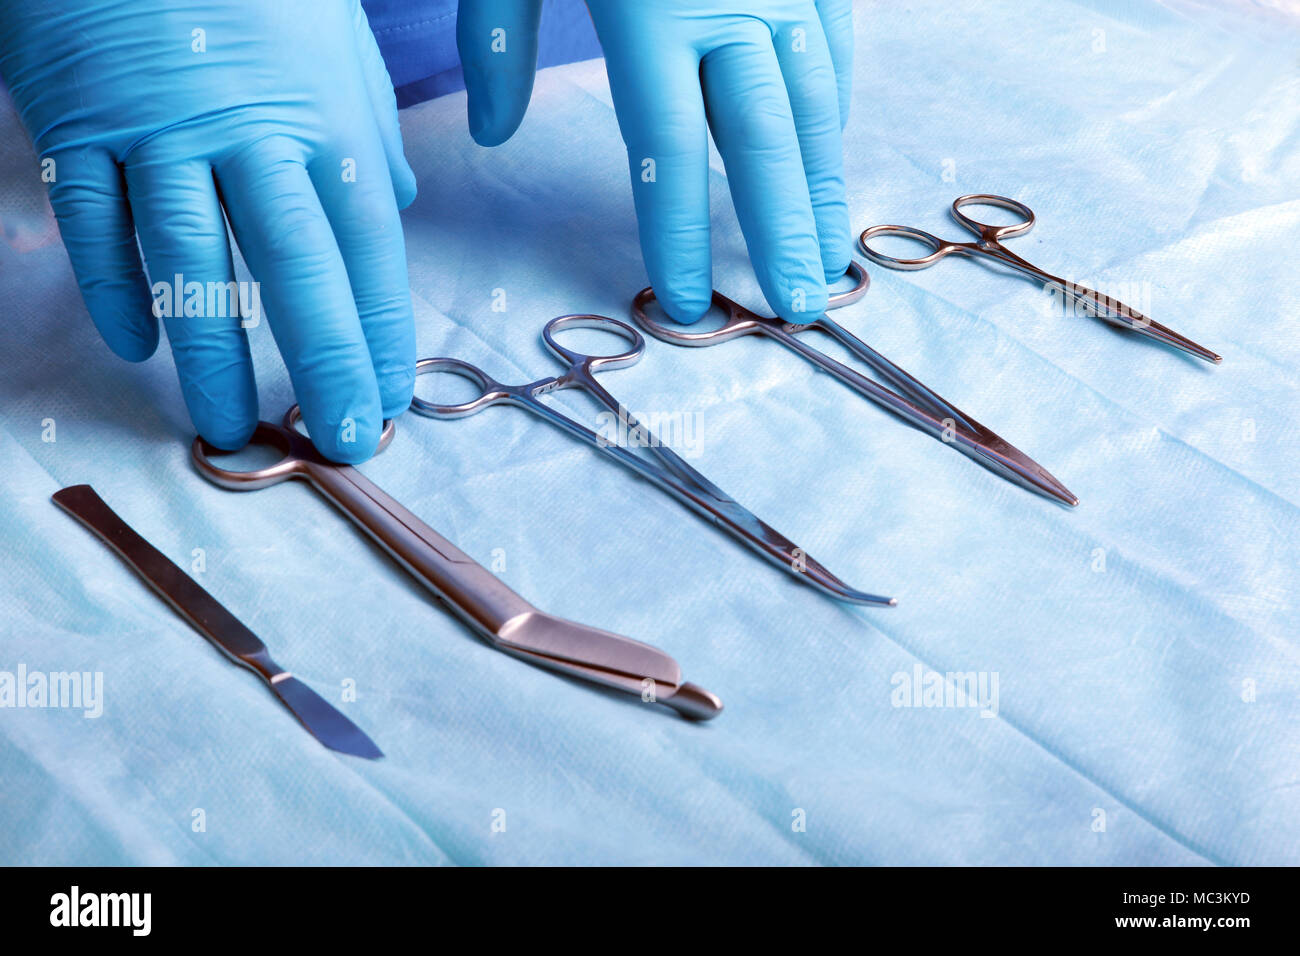 Detail shot of sterilized surgery instruments with a hand grabbing a tool , - Stock Image